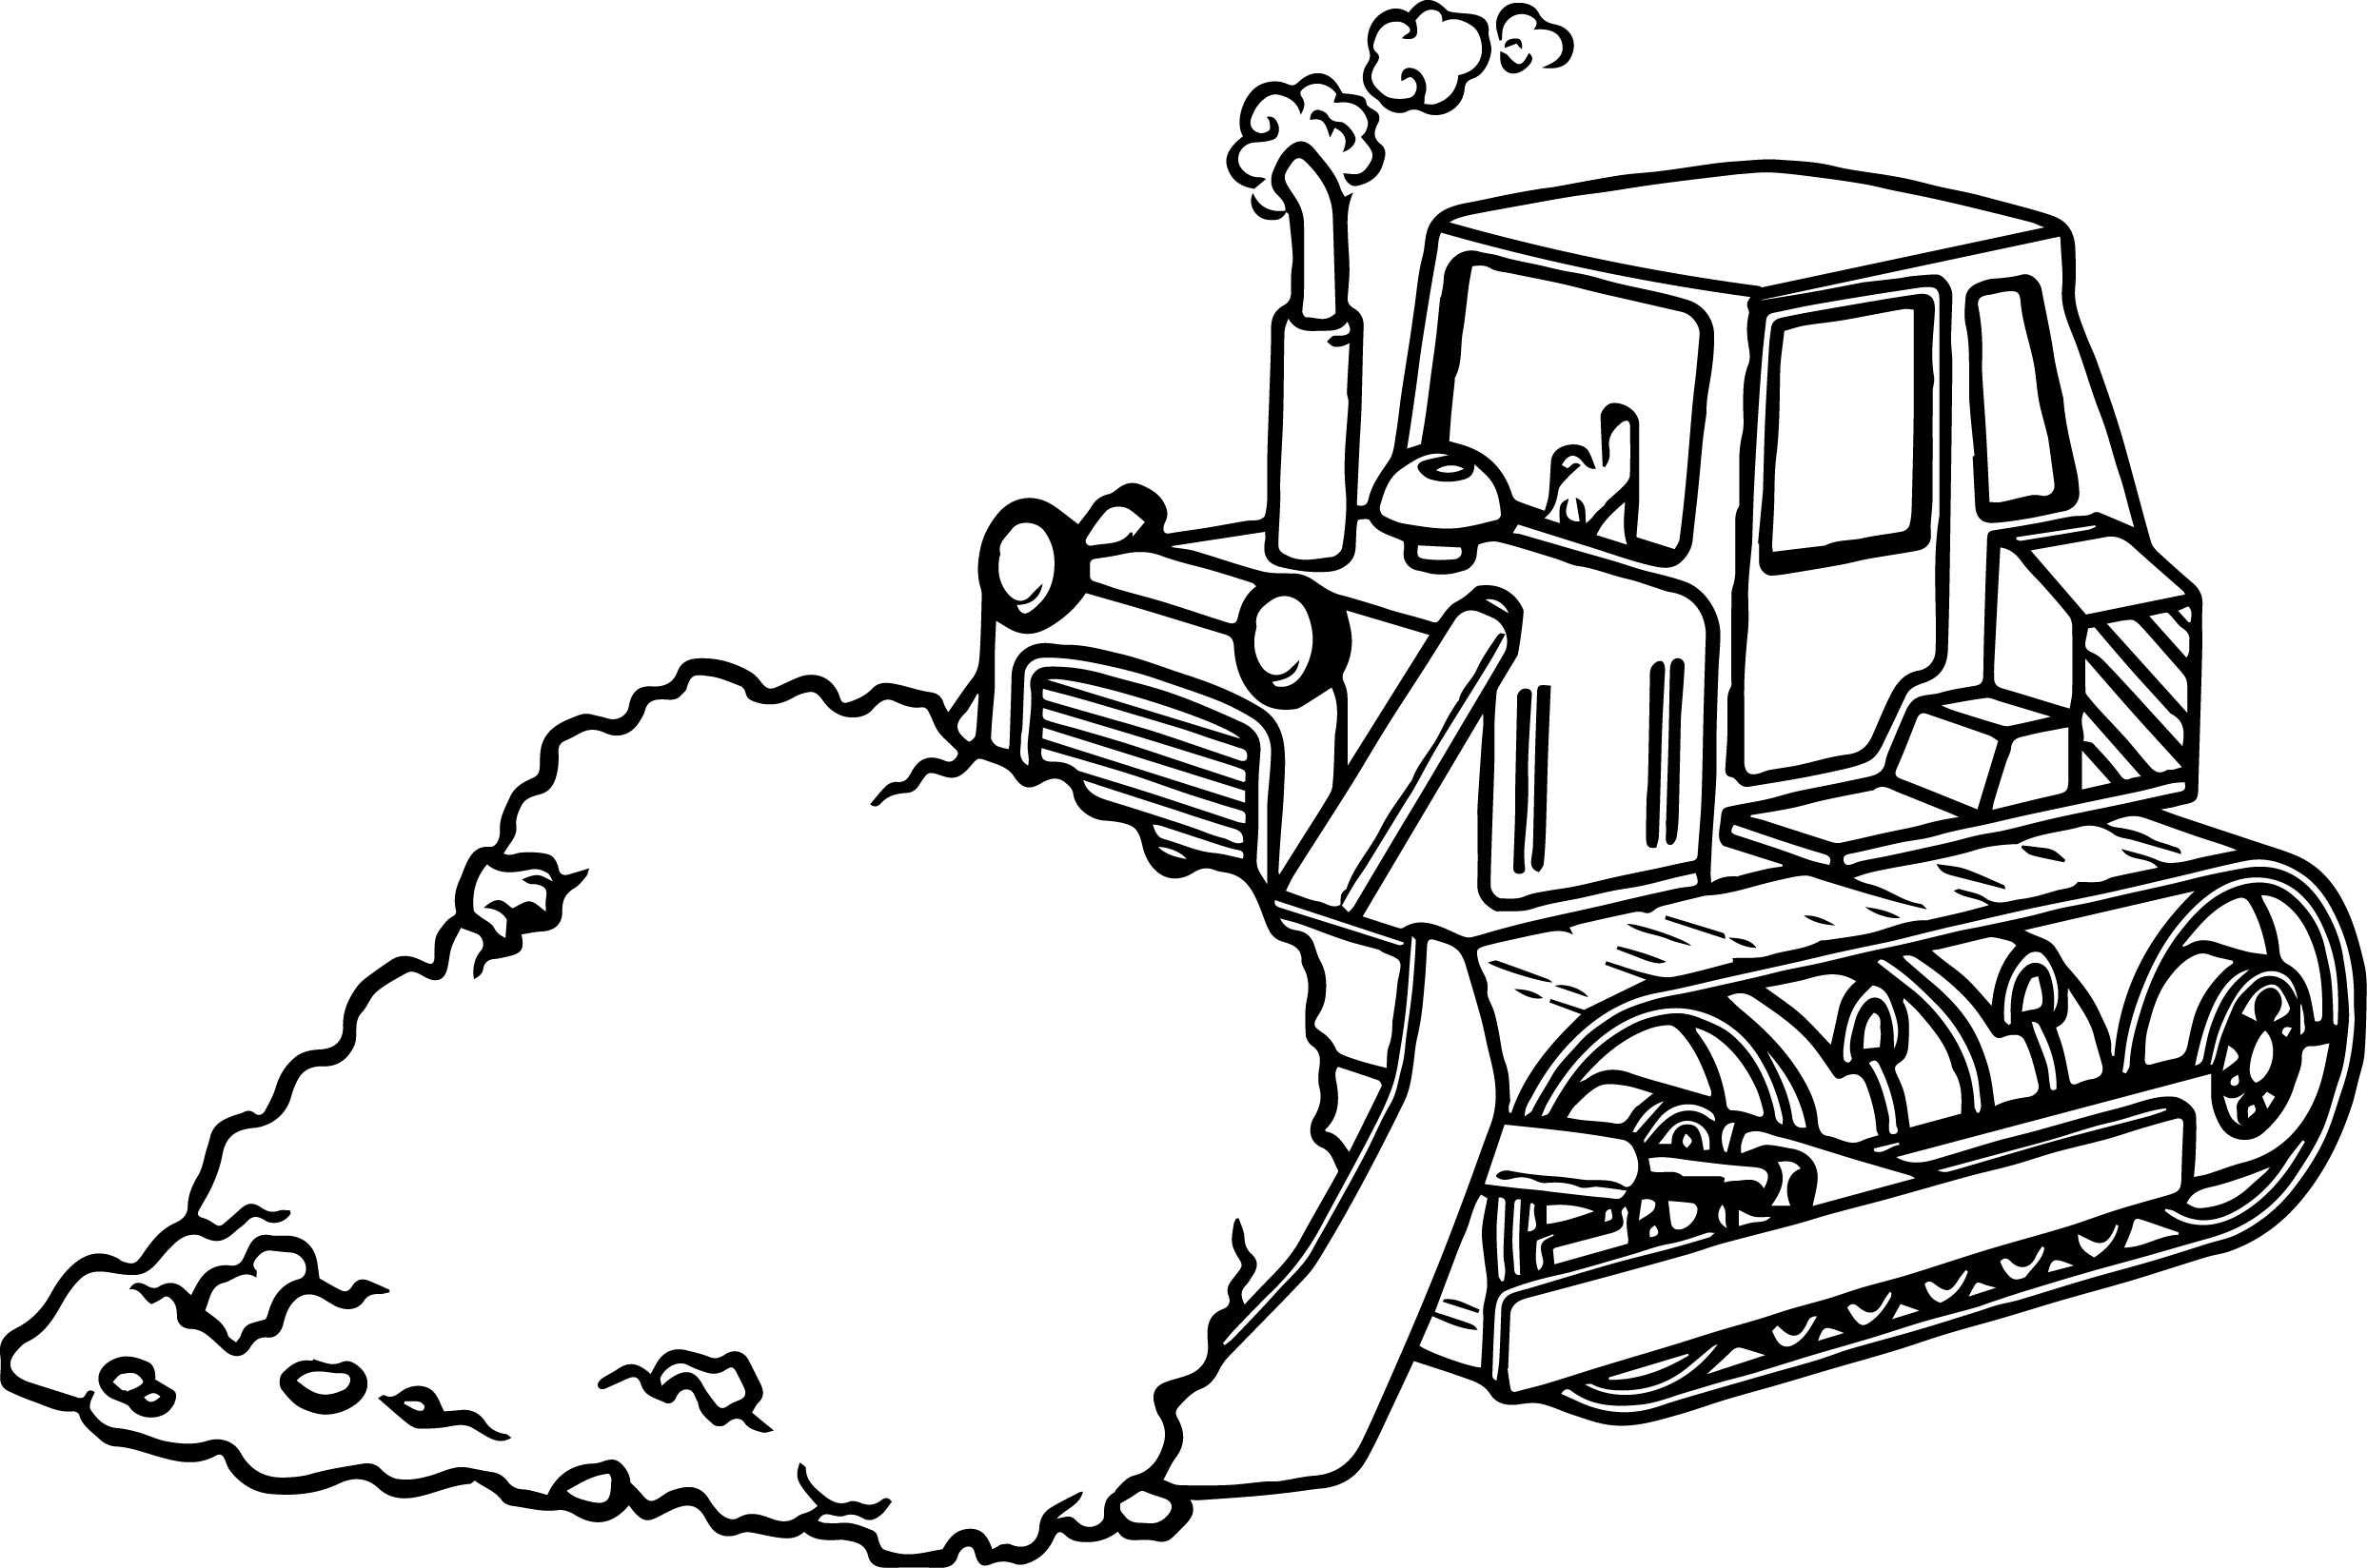 bulldozer pictures to color side bulldozer coloring page wecoloringpagecom color to bulldozer pictures